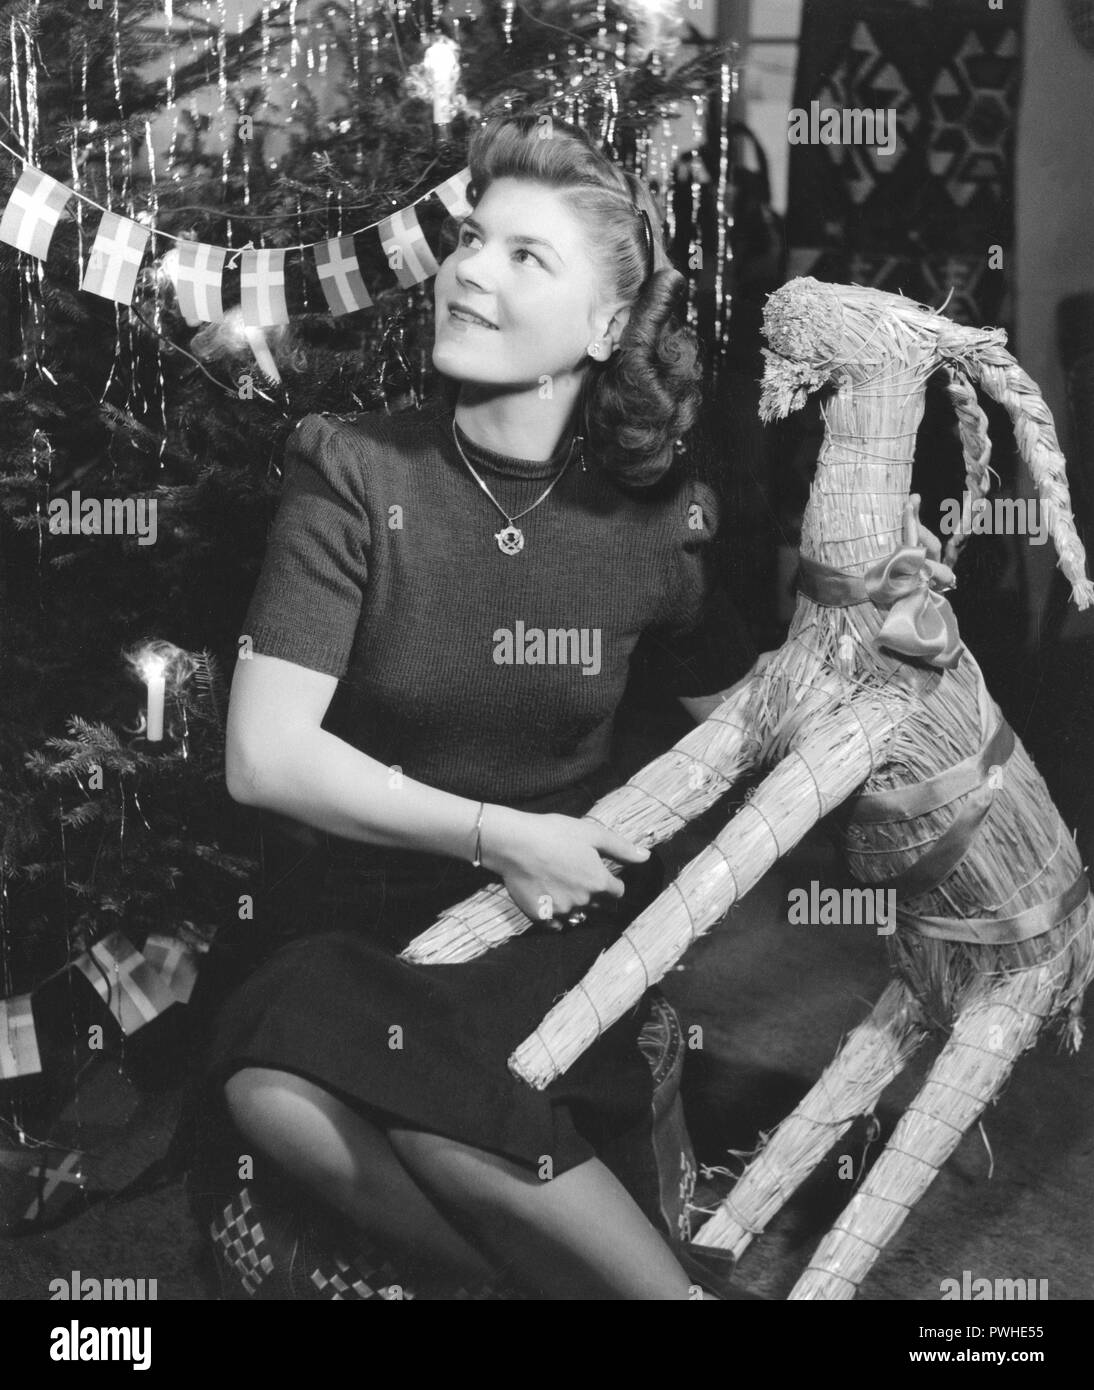 Christmas in the 1940s. The young figure skating Britta Råhlen is celebrating christmas at home in the 1940s. She is holding a traditional straw goat when she sits by the christmas tree. Sweden 1940s. - Stock Image